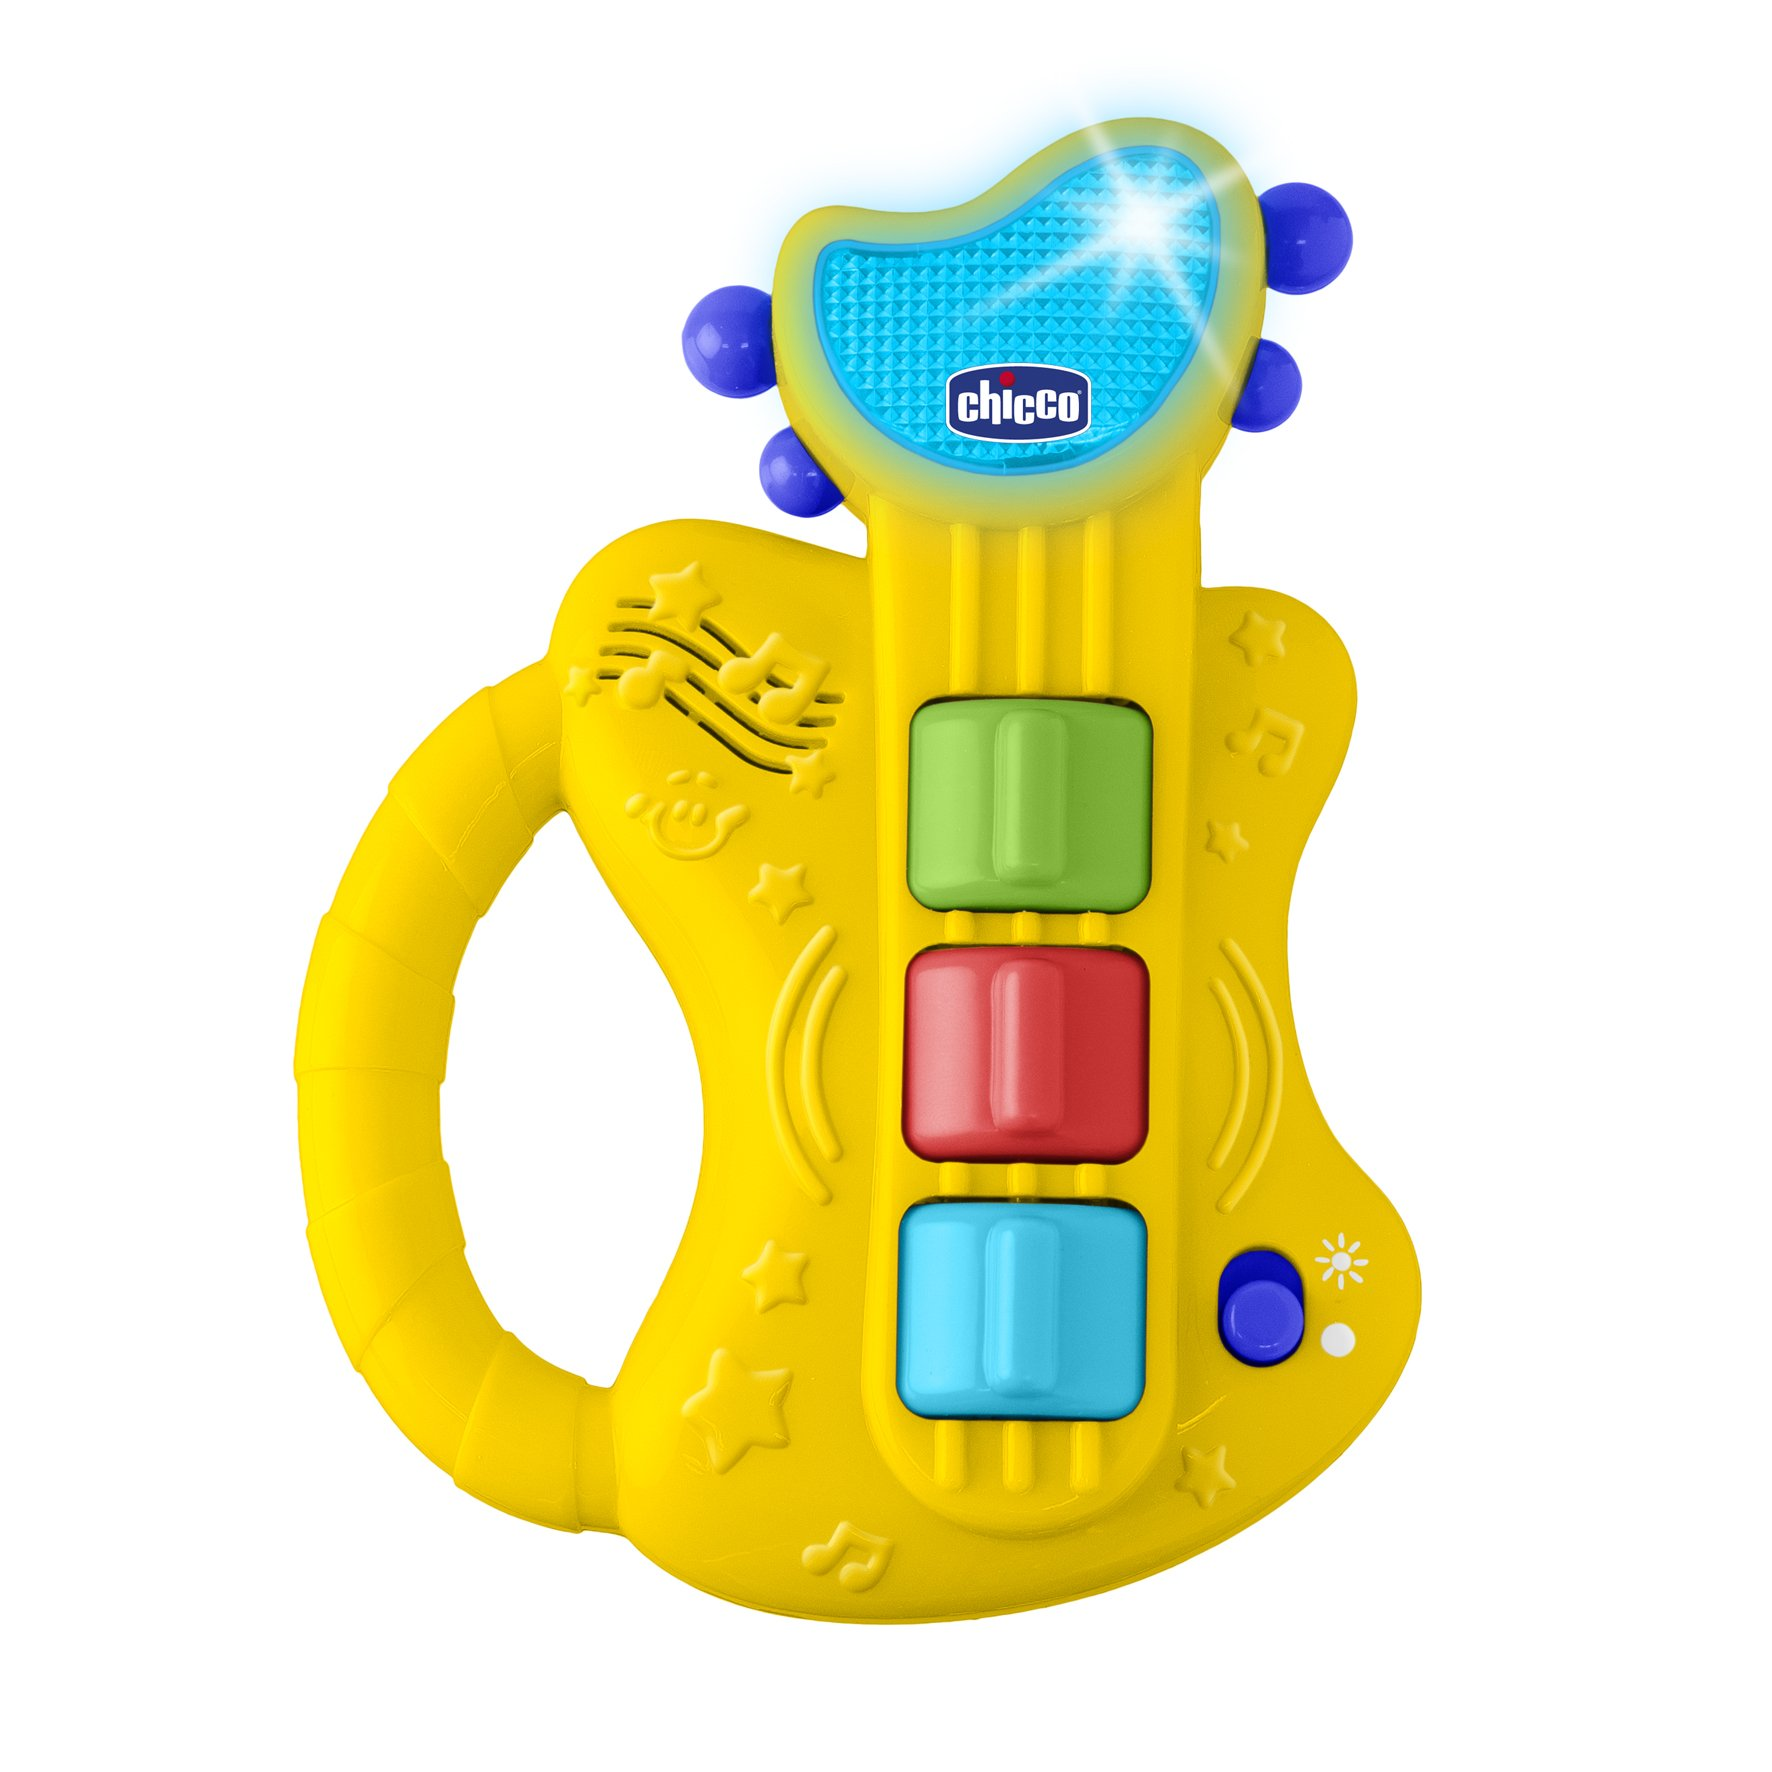 Chicco Baby Senses First Musical Instruments Gitarre